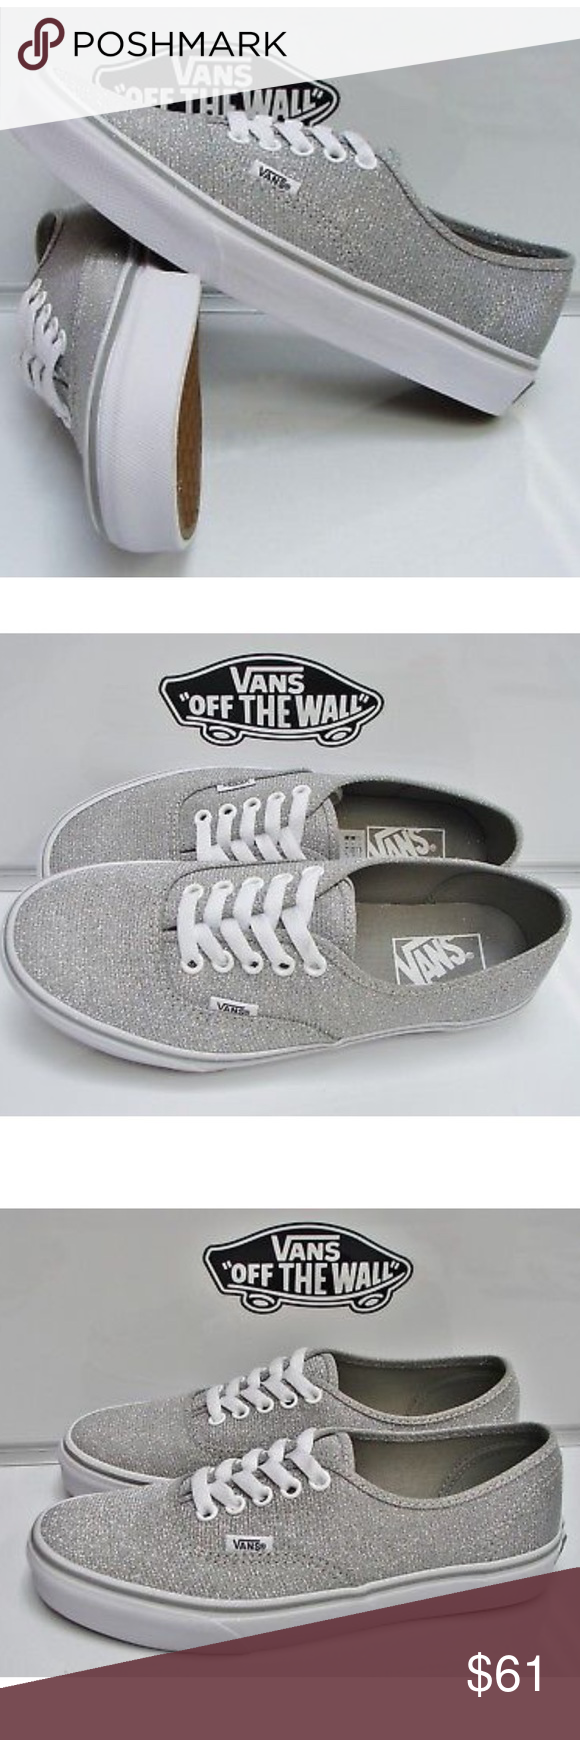 73152ce8bb0aac Vans Authentic Shimmer Silver Shoes The Vans Authentic Silver Shimmer shoe  blends together a classic look